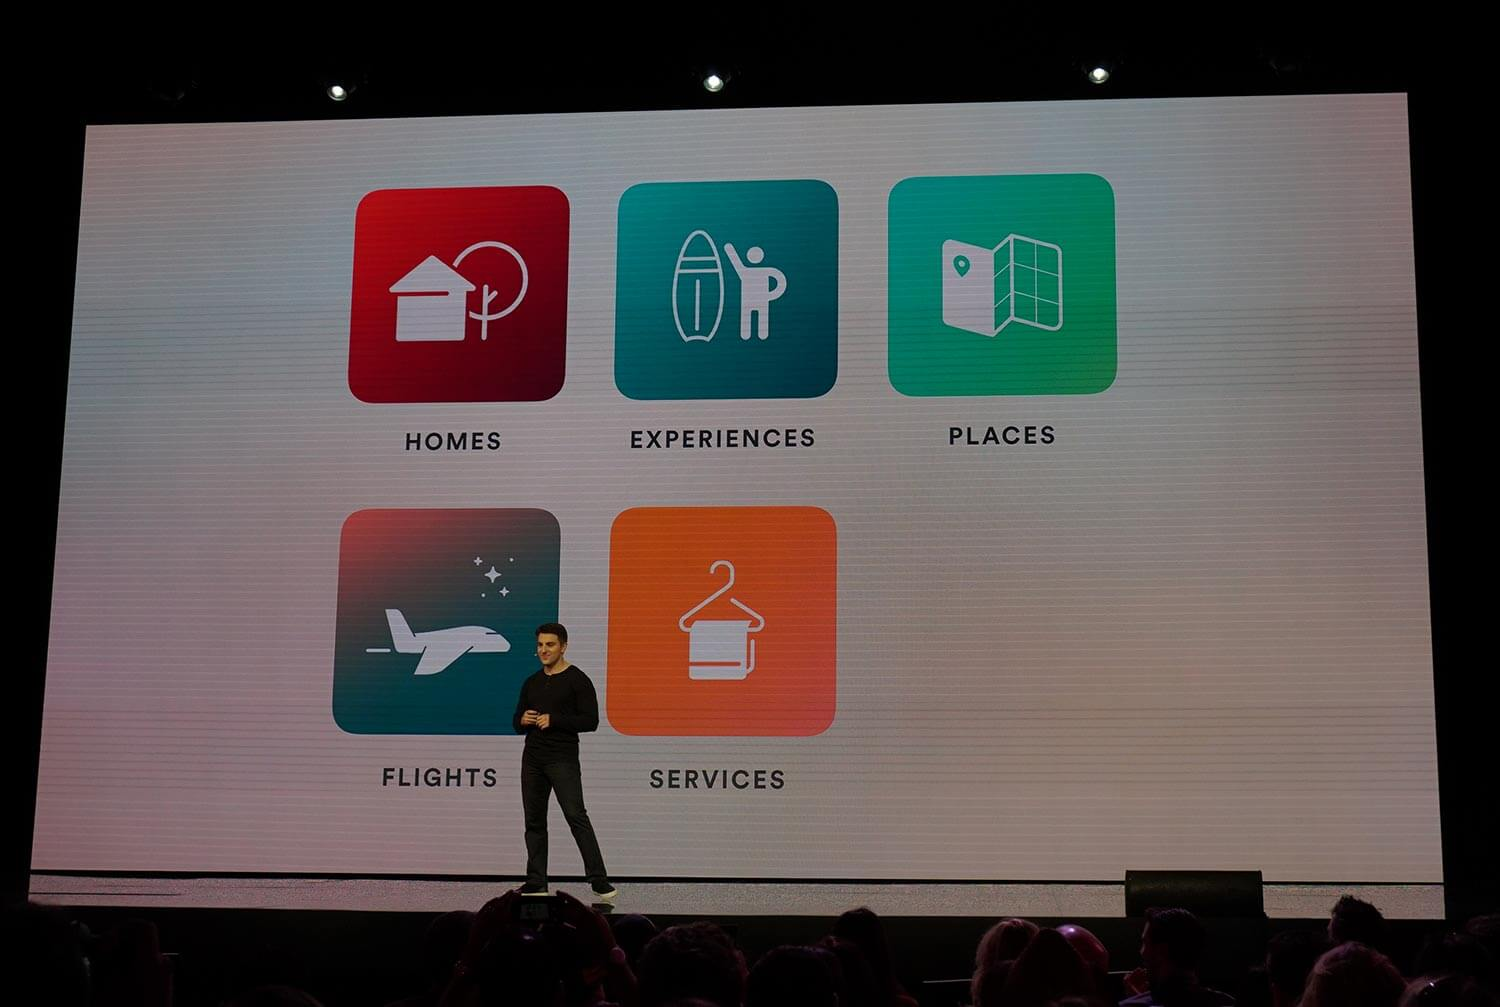 Airbnb chief executive Brian Chesky highlights that the company will soon expand into other trip-related areas, including flights and services.